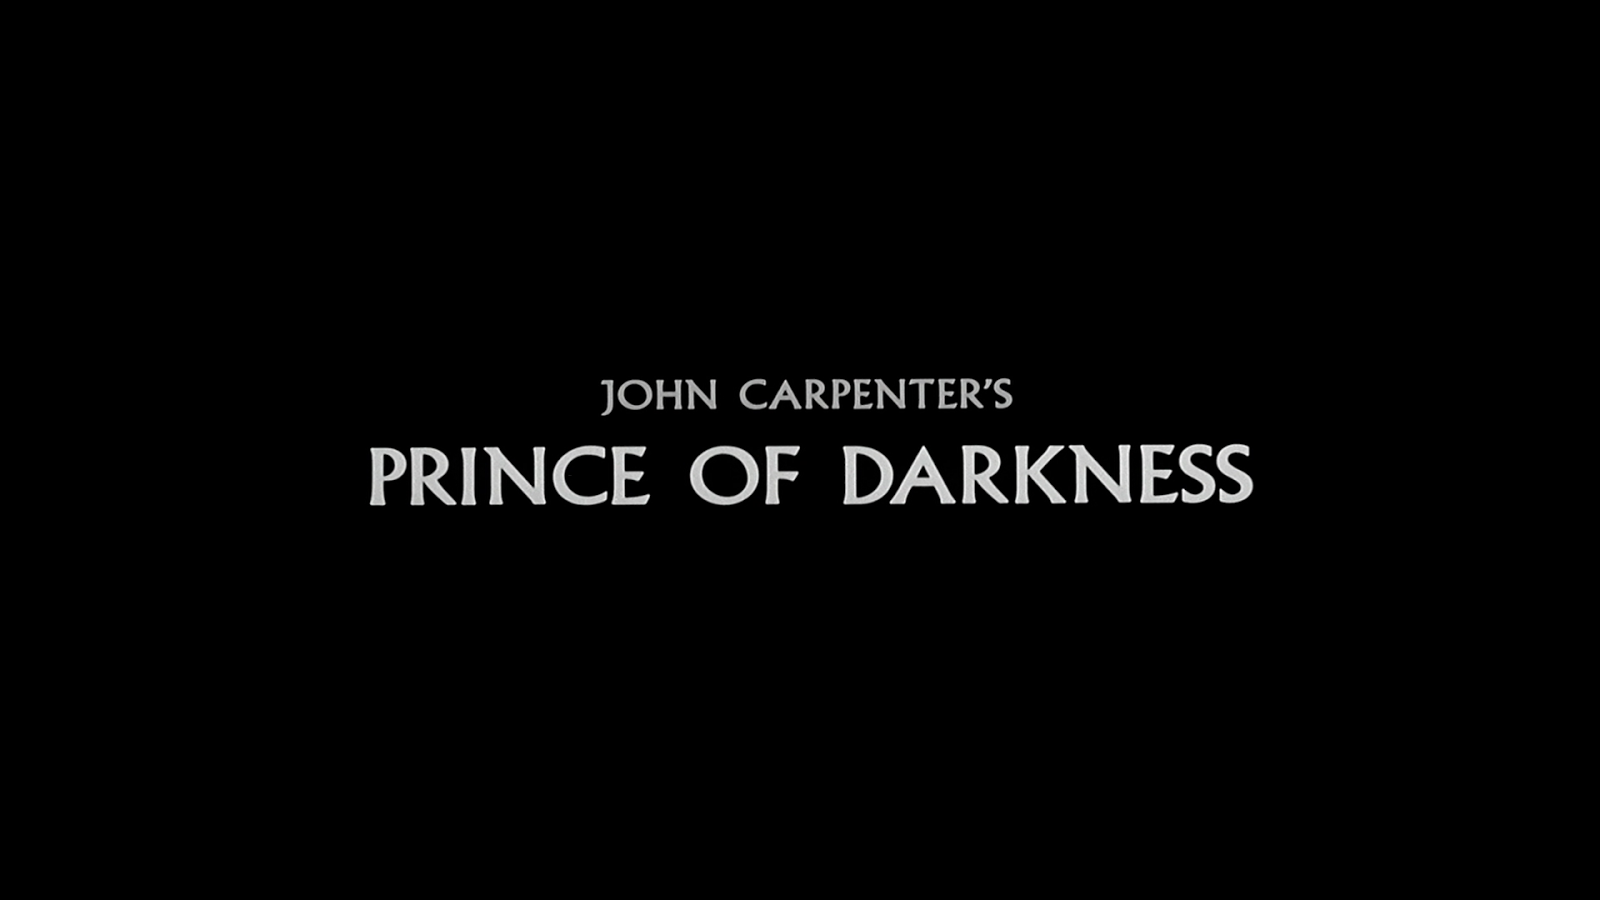 Prince of Darkness Wallpaper Highly Recommended Just For